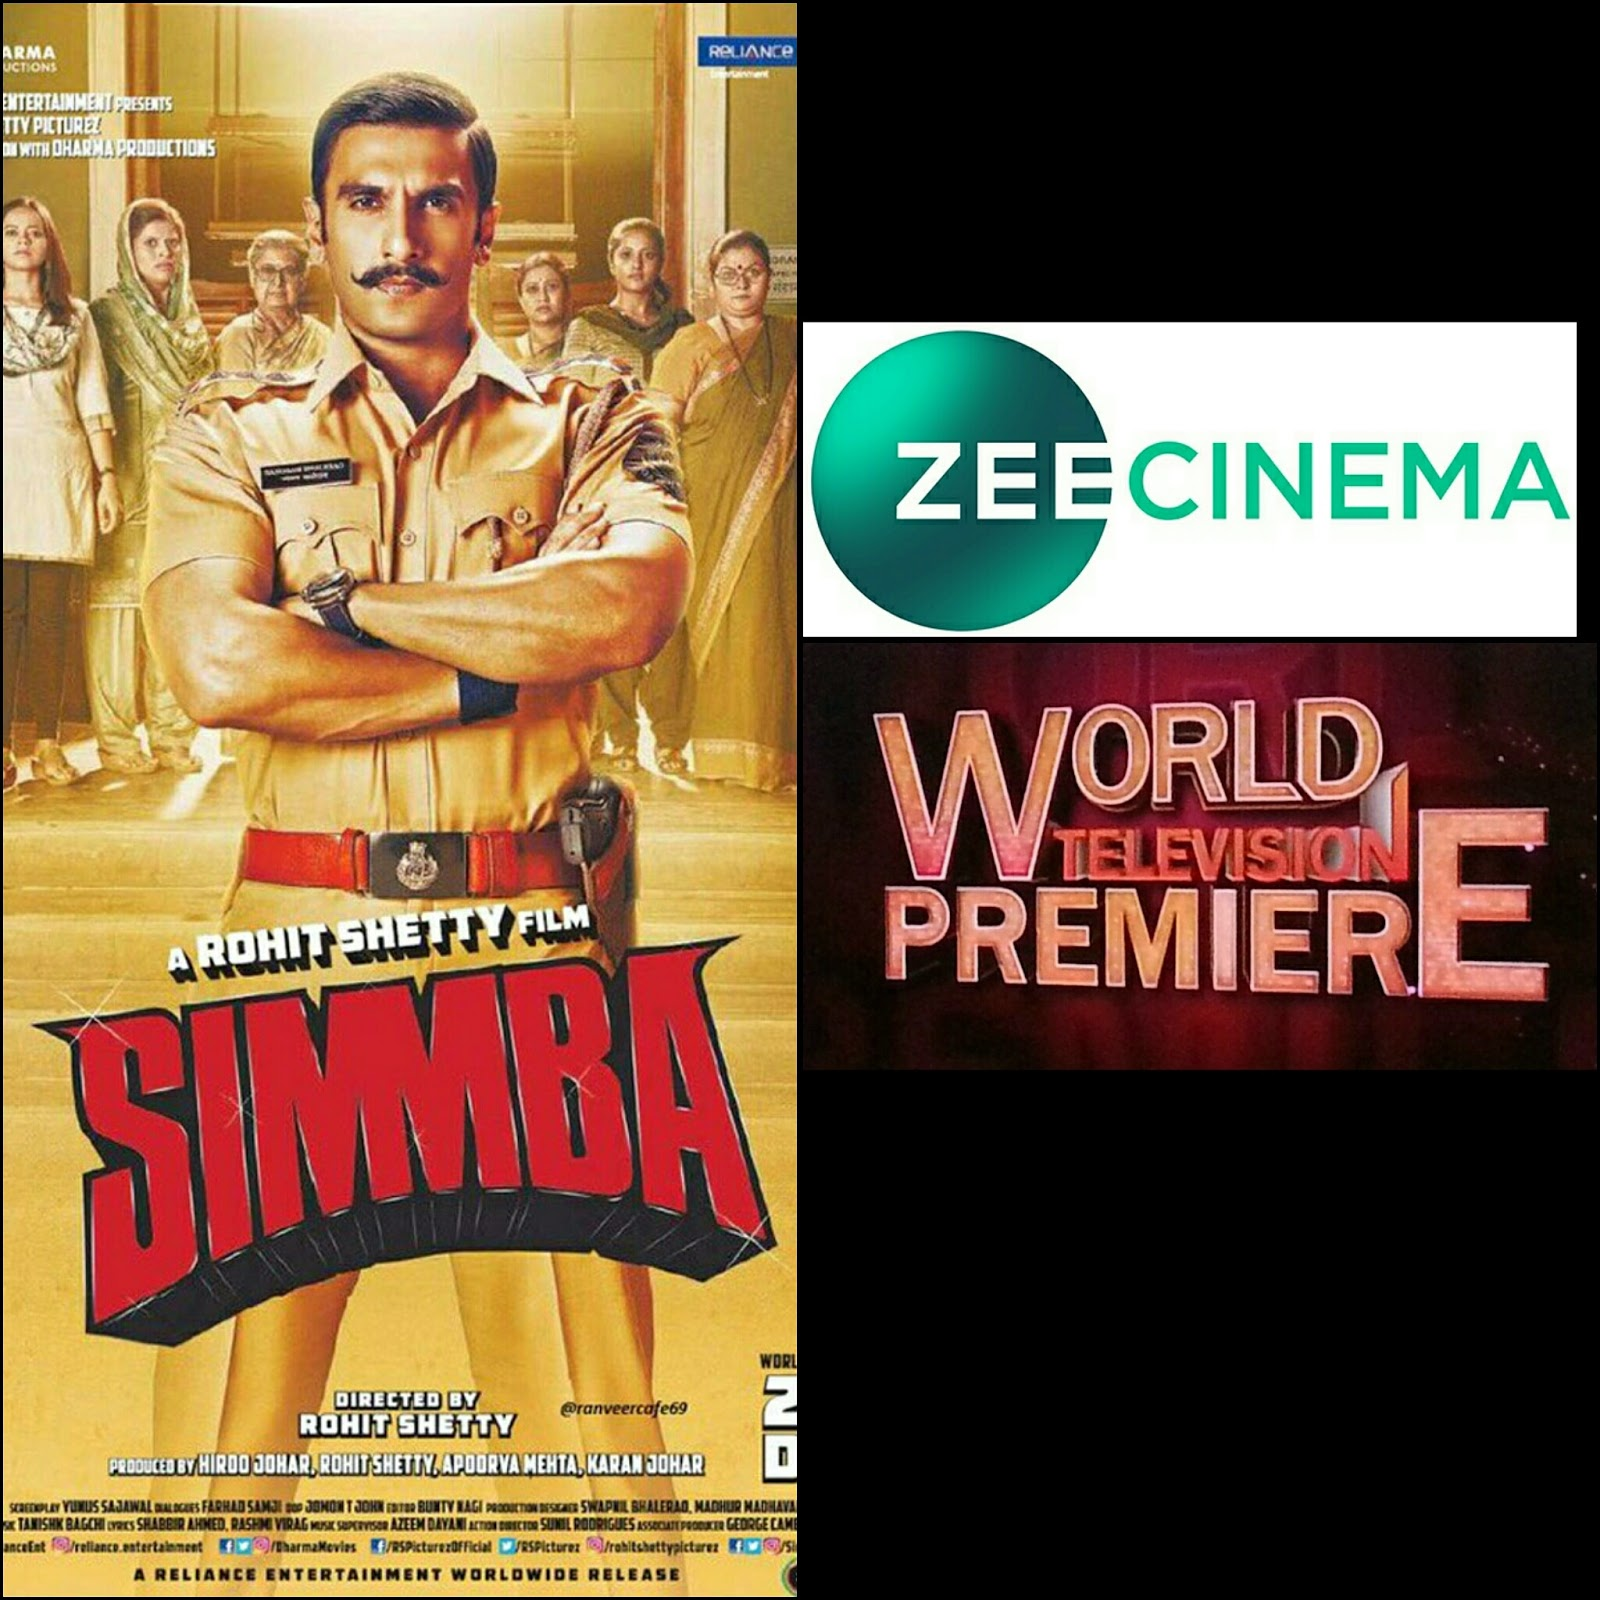 Simmba Tv Premiere Simmba On Tv World Tv Premiere Confirmed Date Bollywood Buff